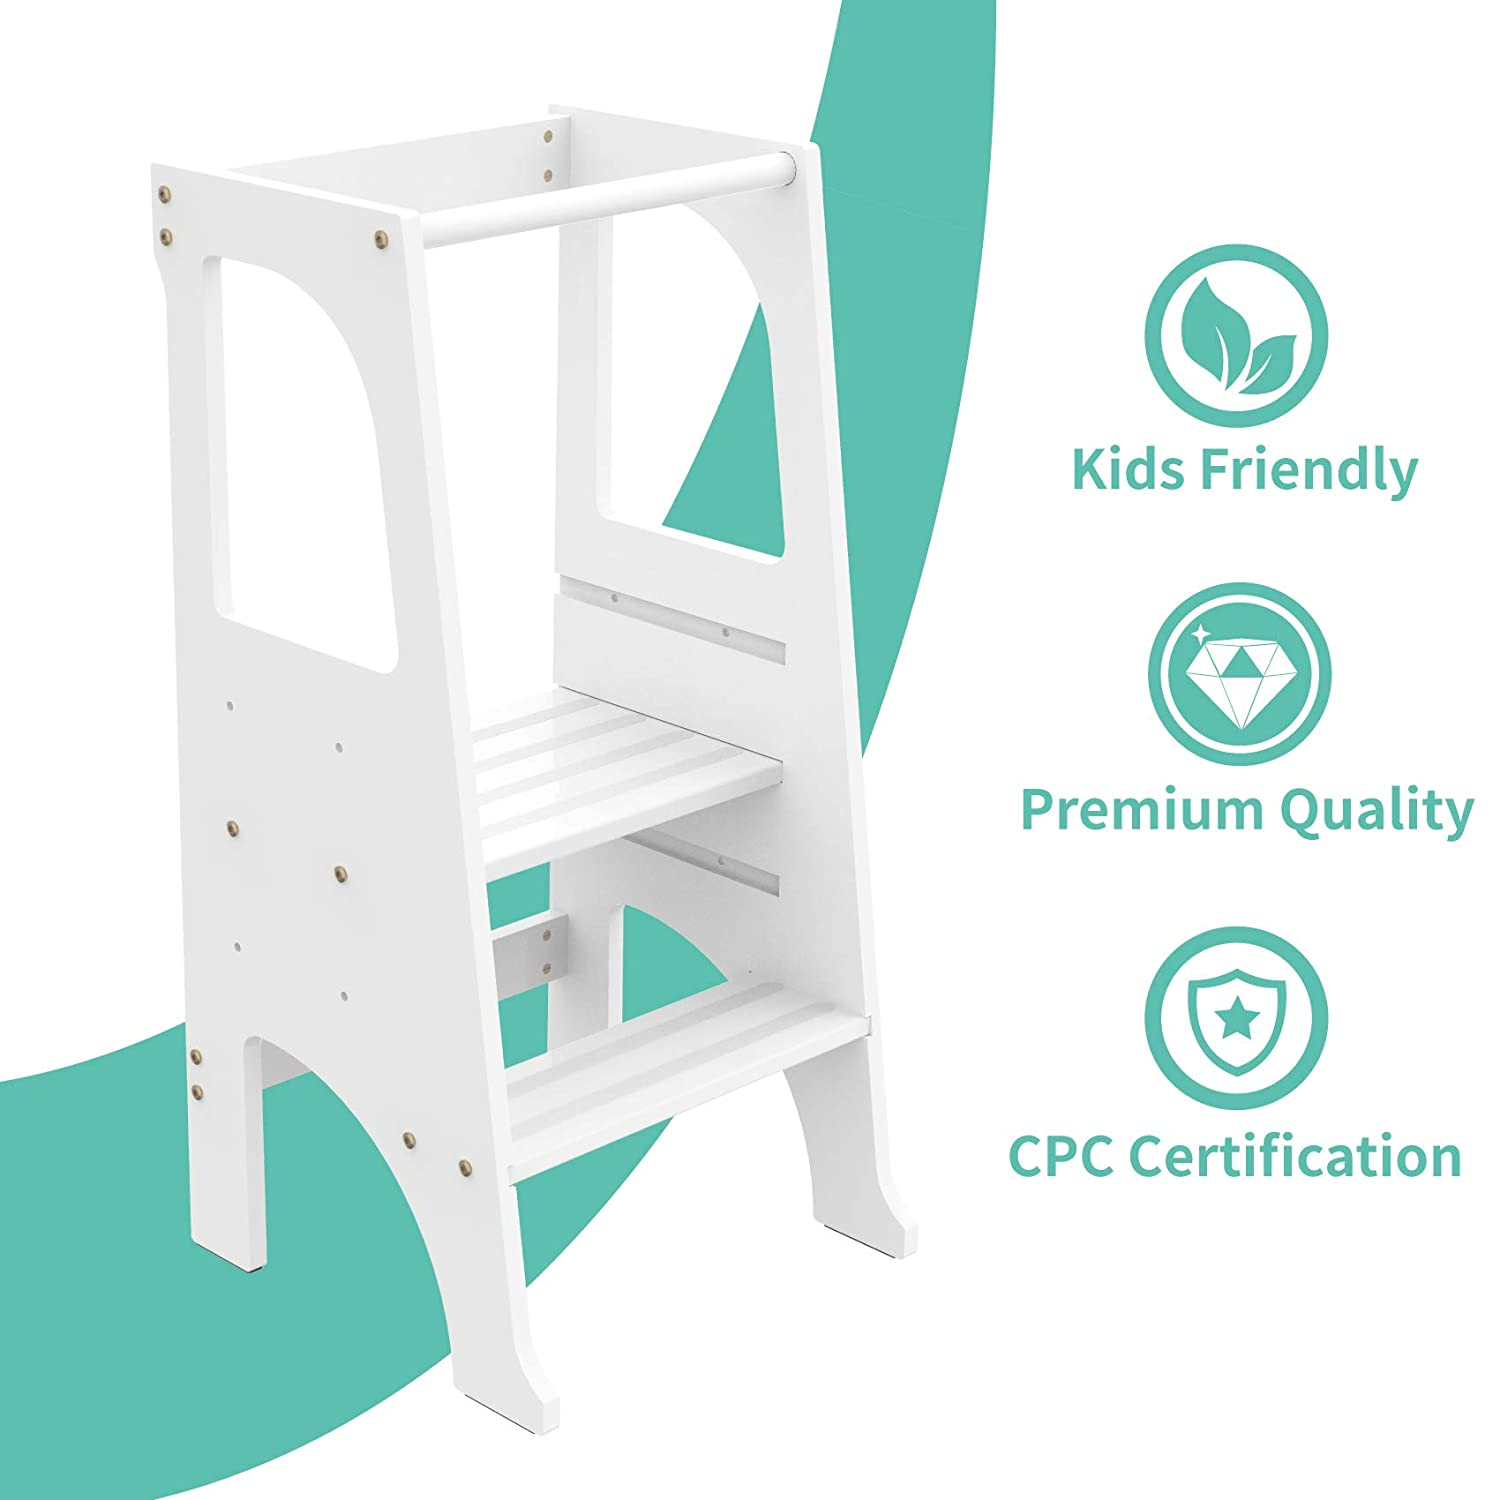 Steady Feet White Wooden Learning Toddler Tower 2 Steps Design FUN /& CARE Kitchen Step Stool for Kids with Safety Rail 3 Adjustable Platform Anti-Slip